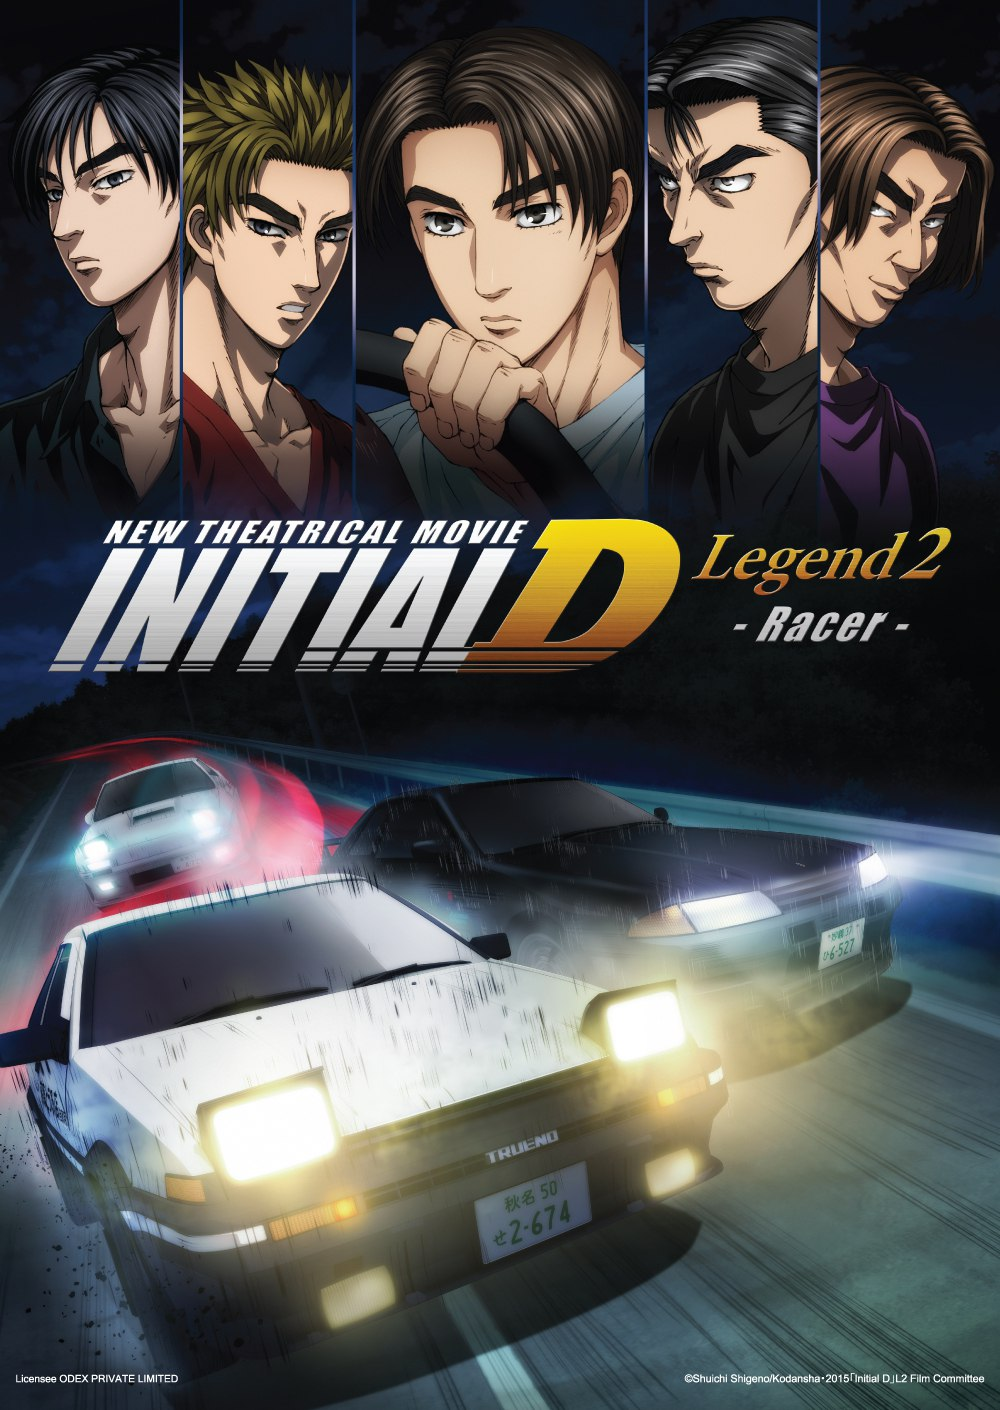 [MOVIE] New Initial D the Movie: Legend 2 – Racer IN SG